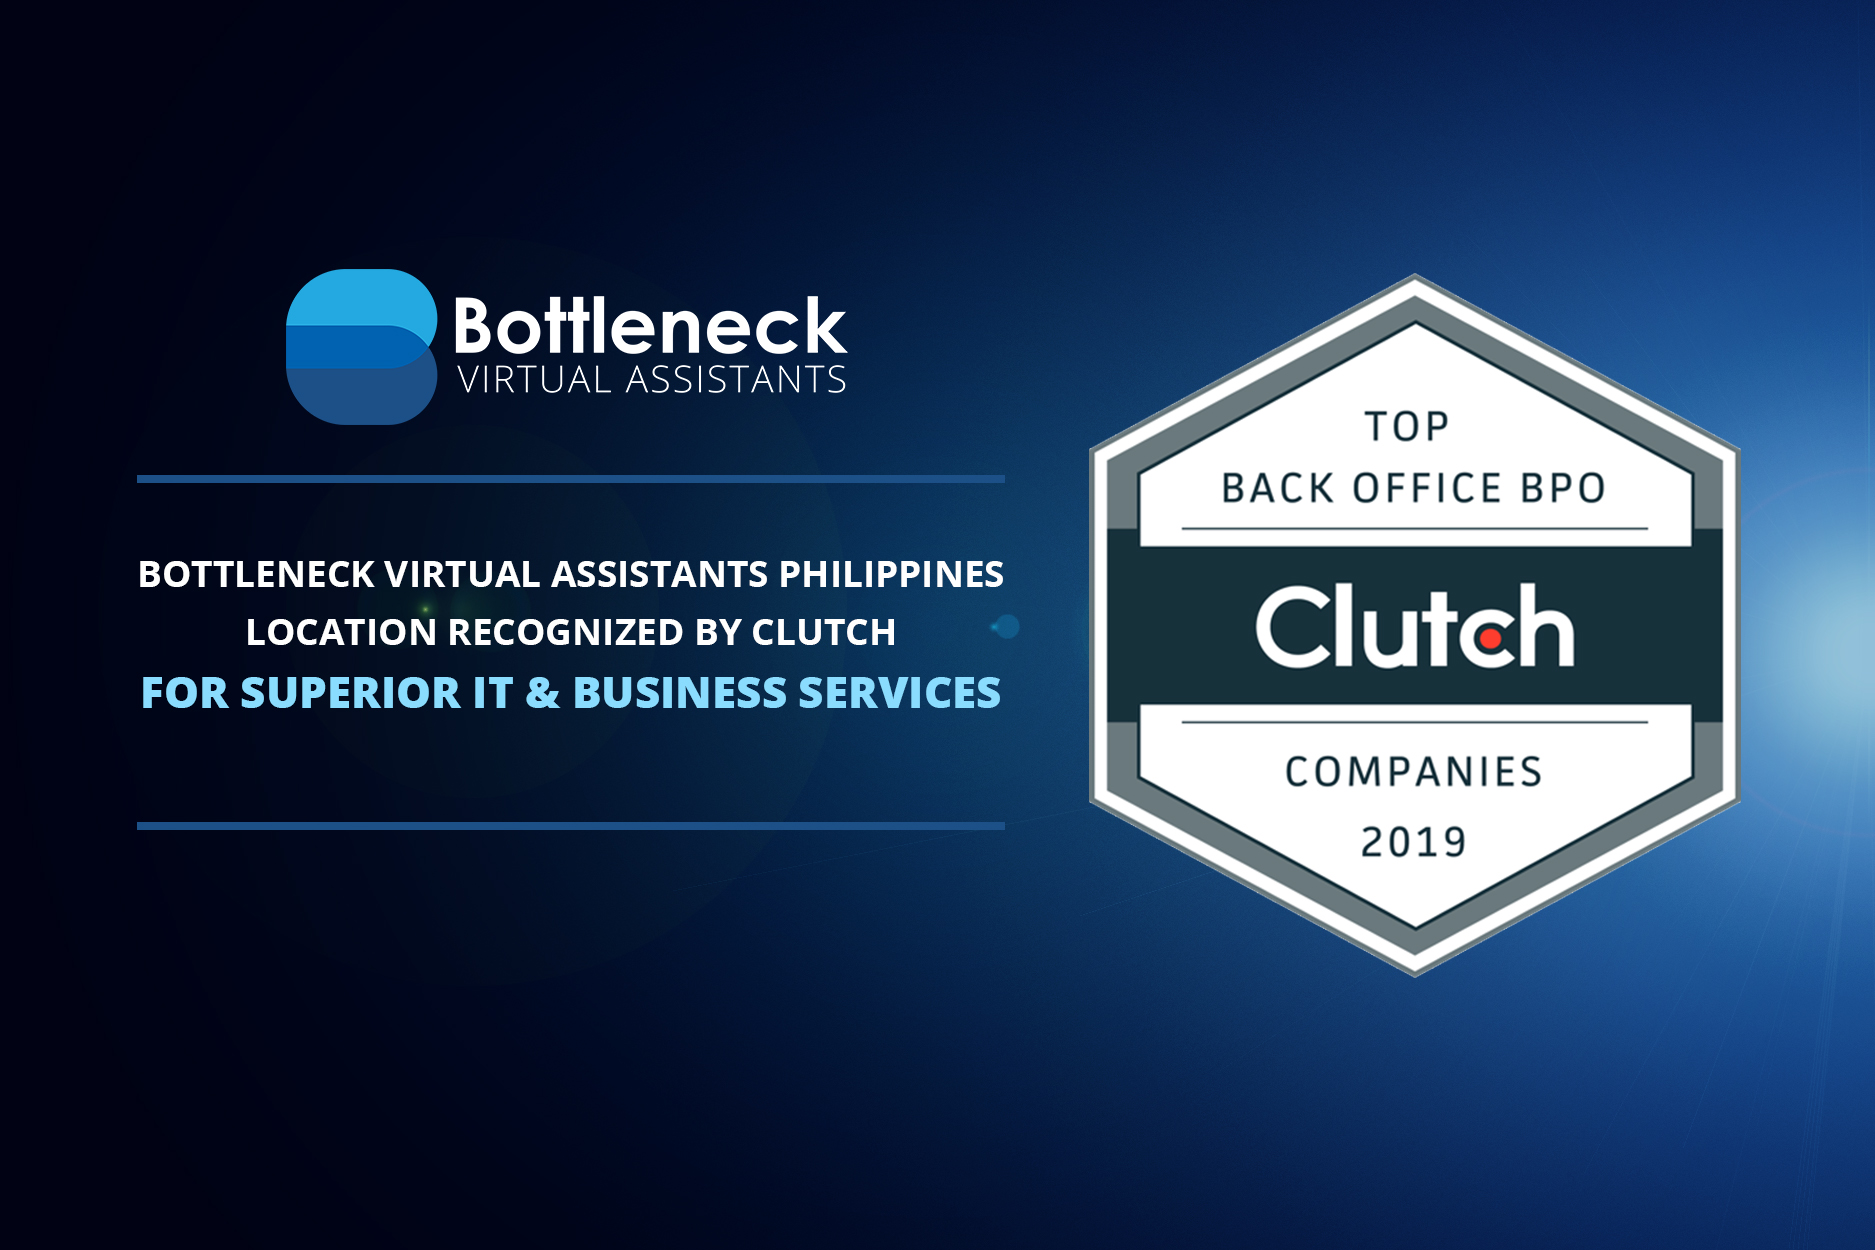 Bottleneck Virtual Assistants Philippines Recognized by Clutch